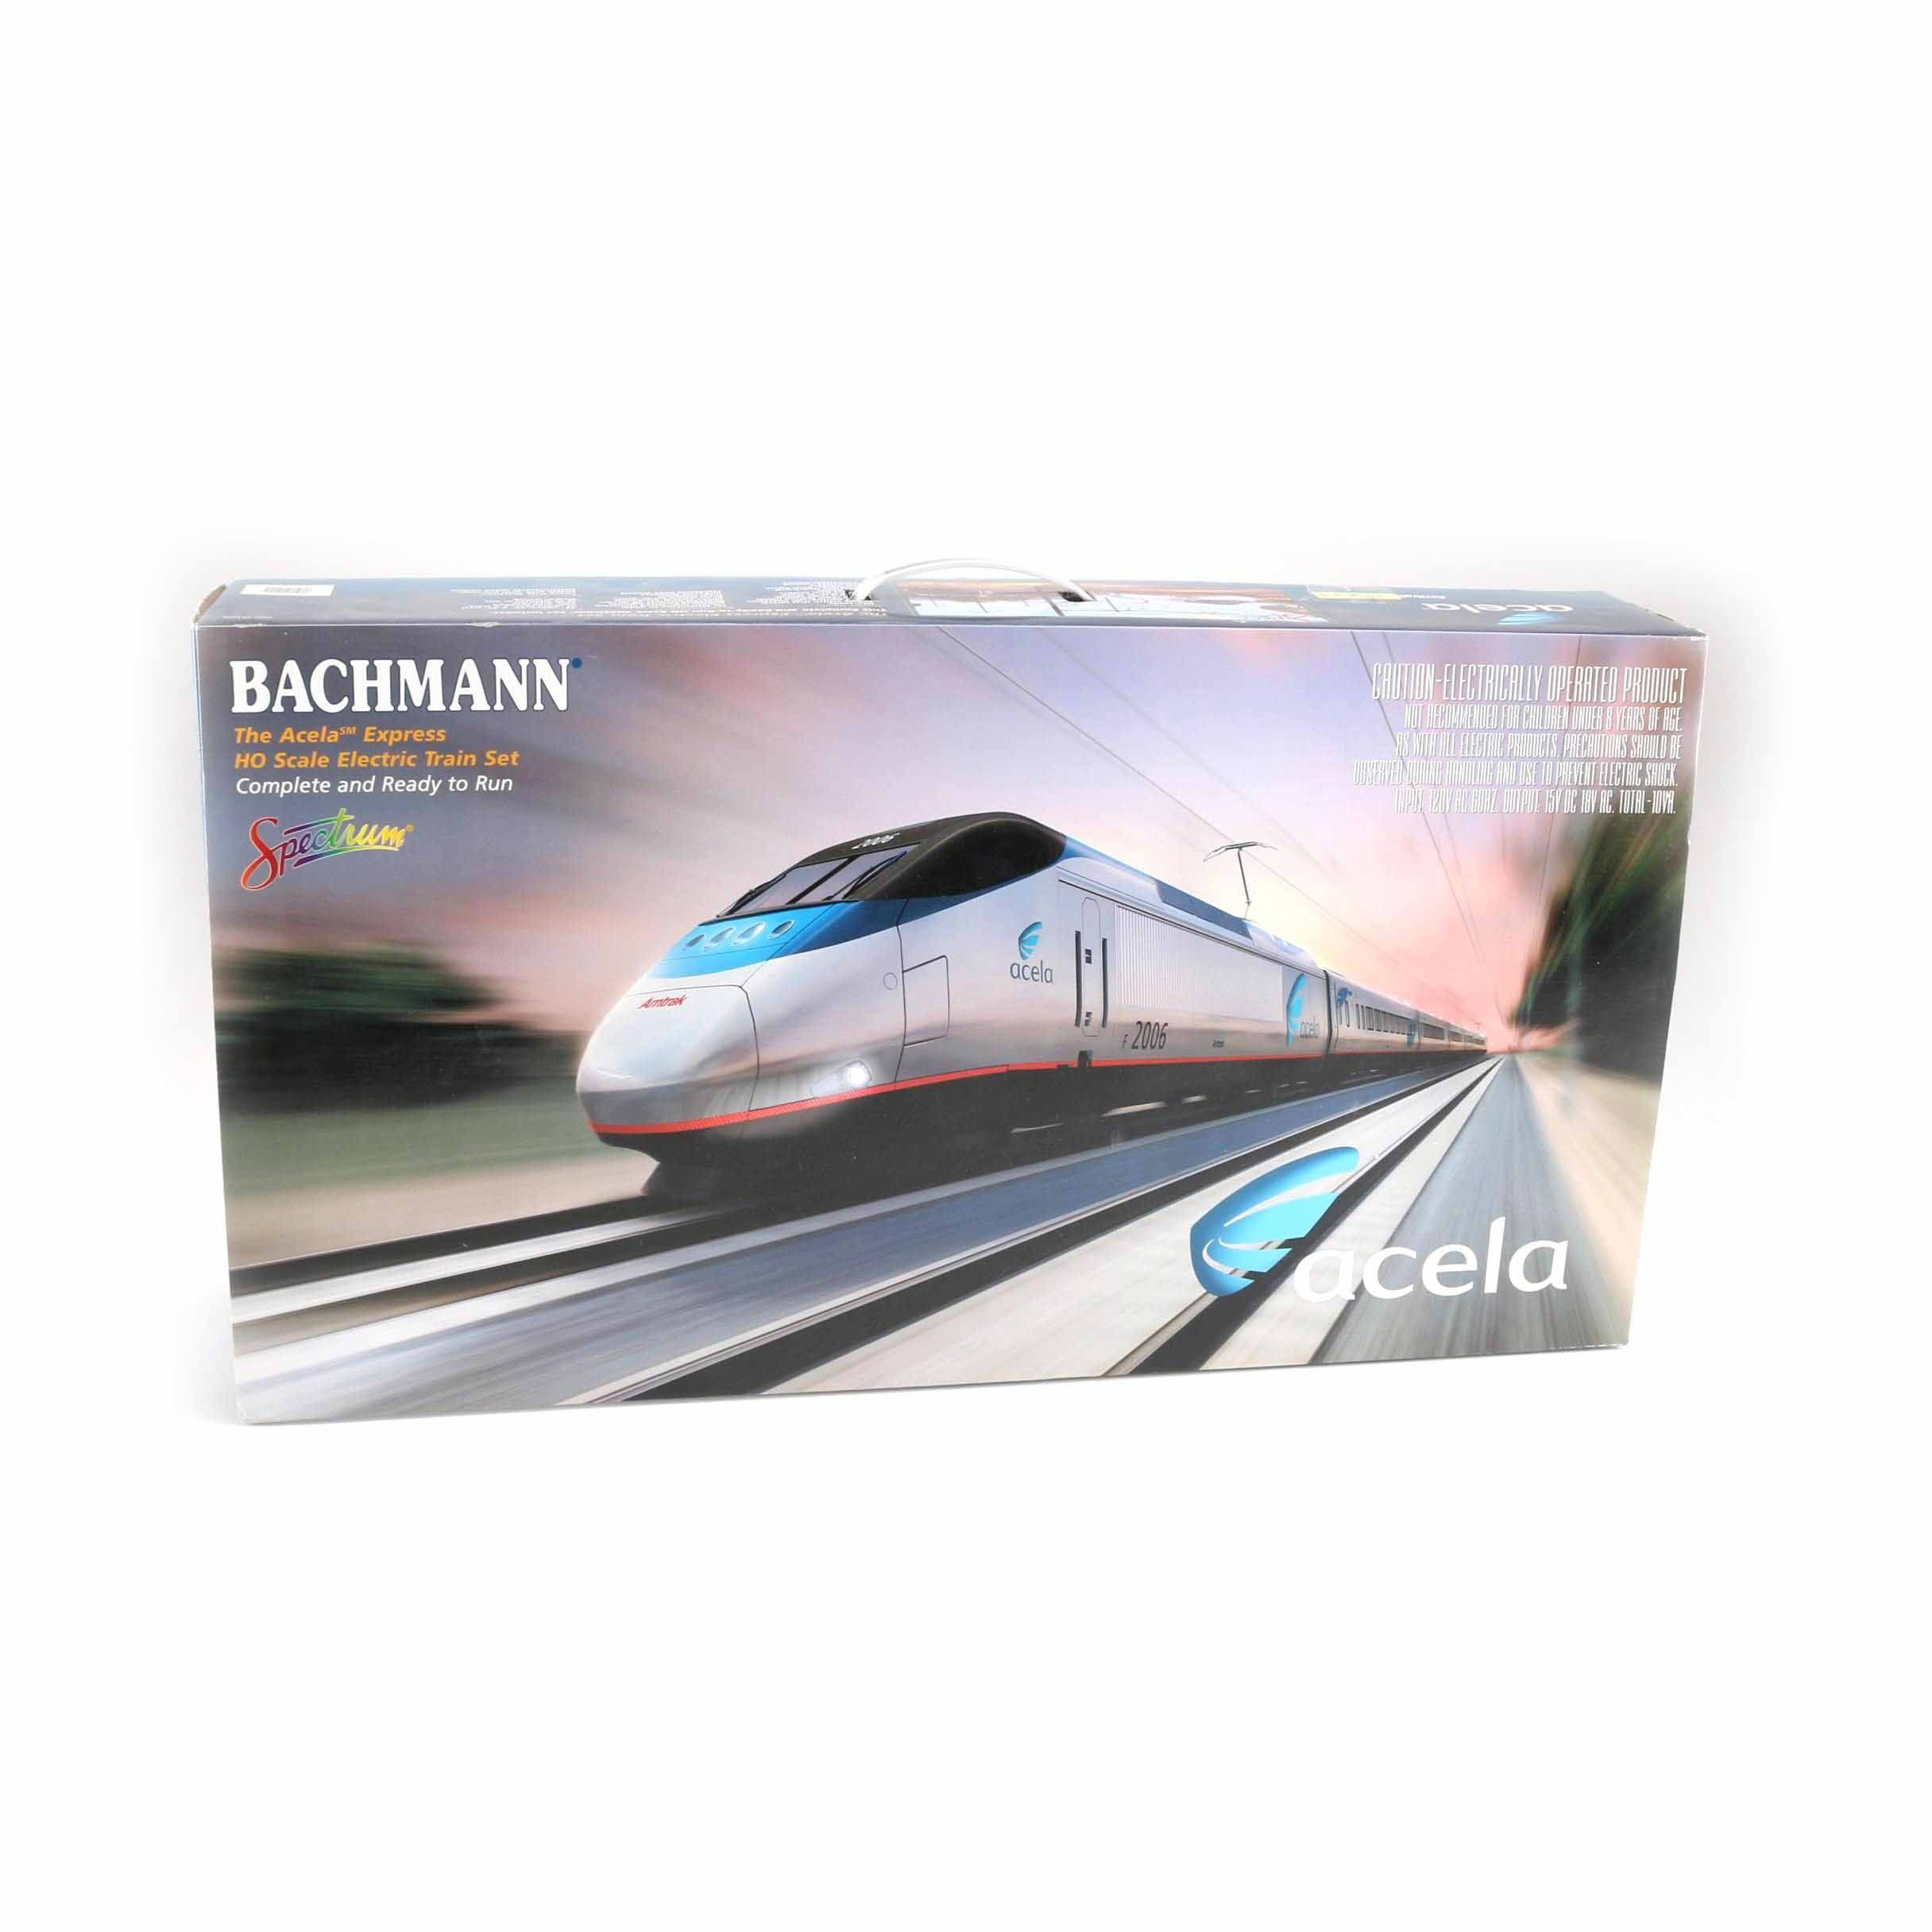 Bachmann Acela Express Electric Train Set